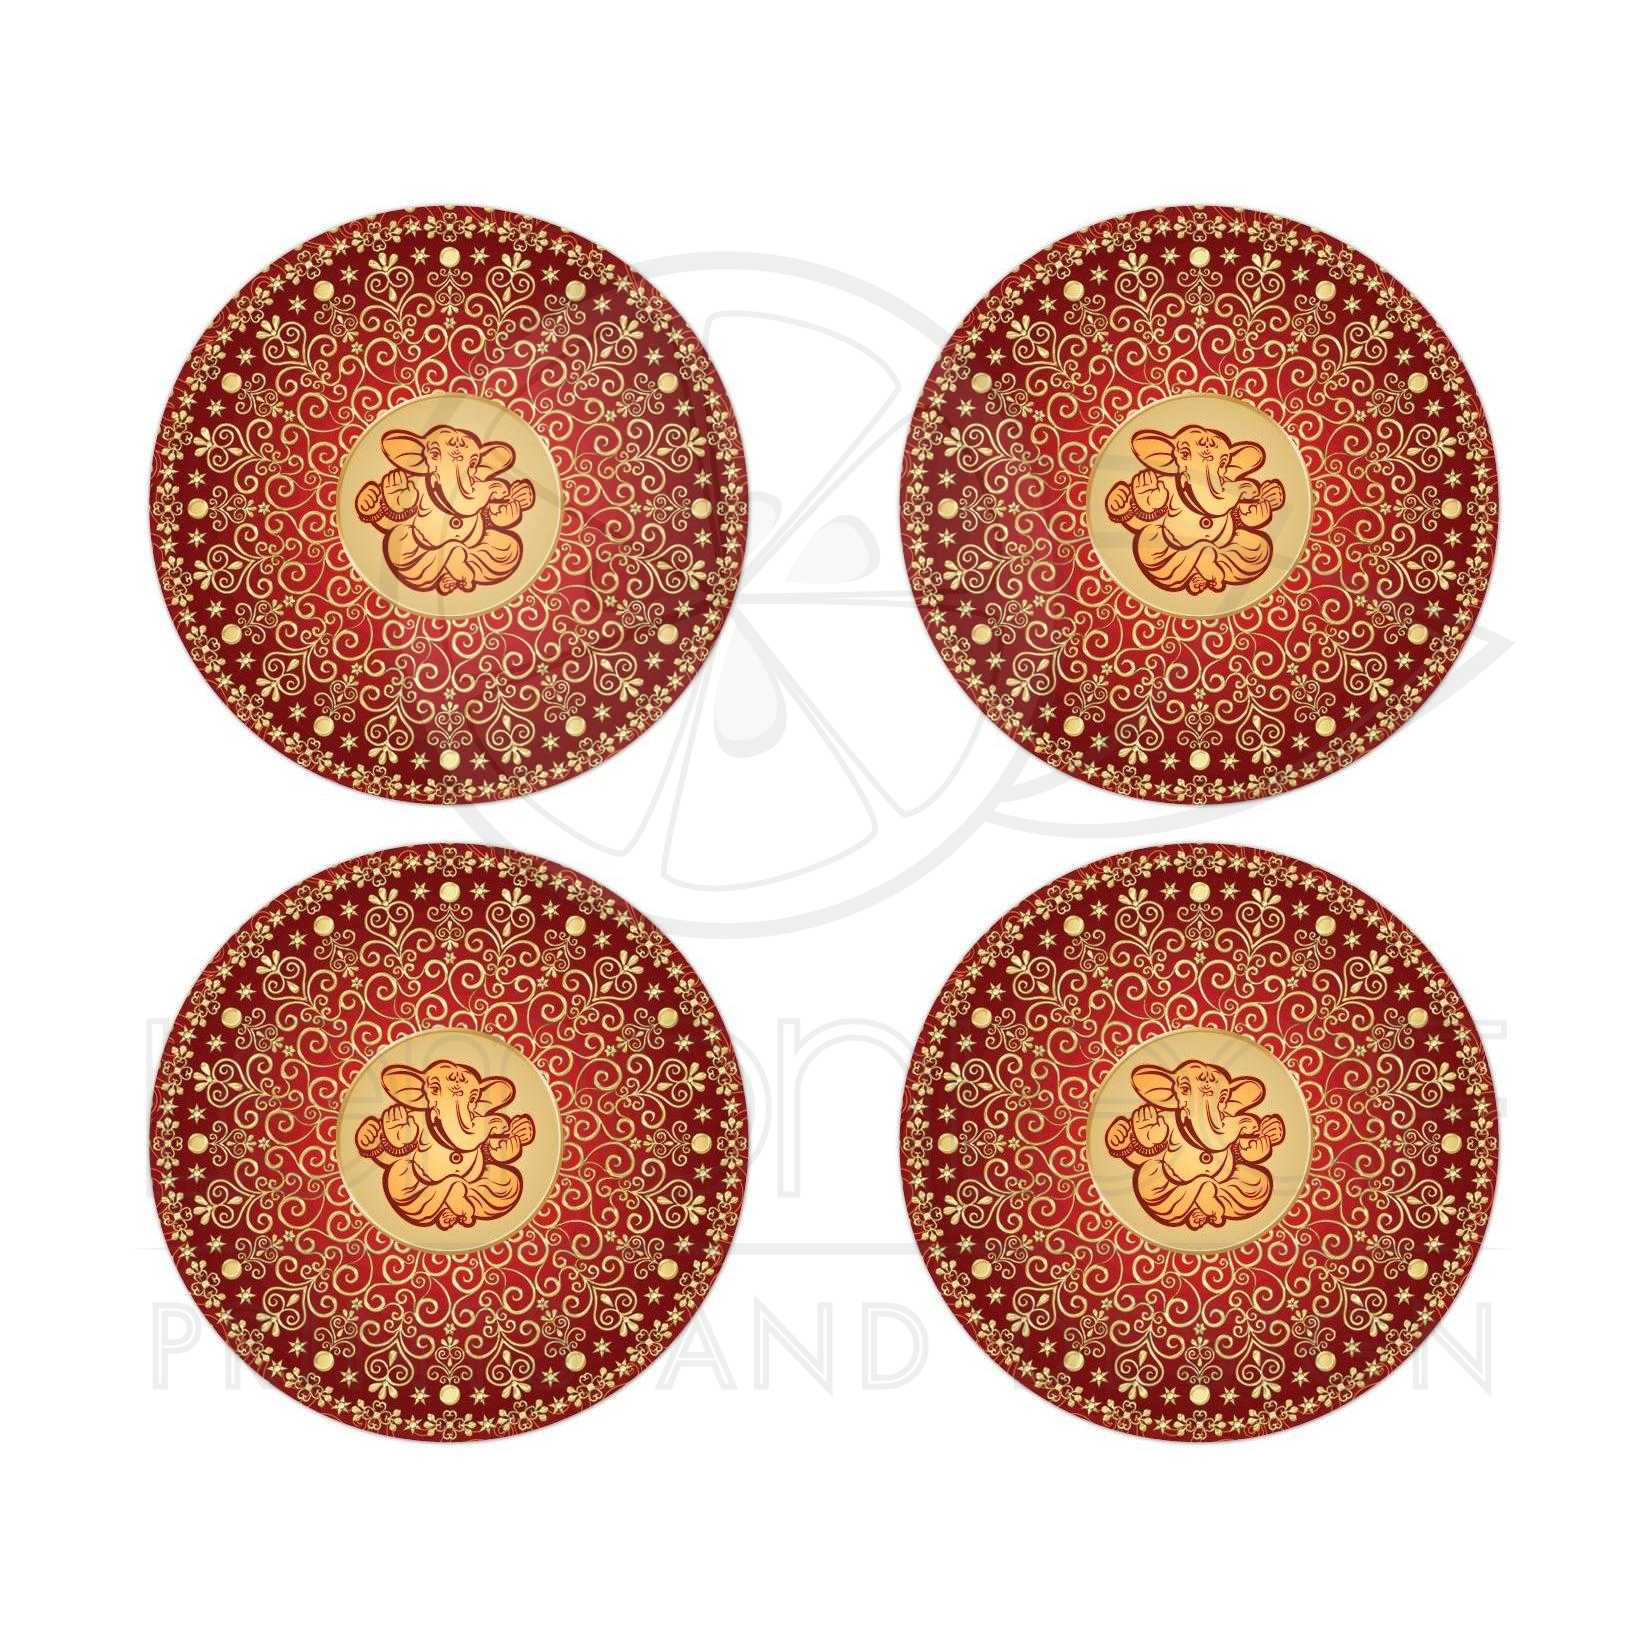 Best Red Orange And Gold Ethnic Wedding Envelope Seals Or Favor Stickers With Scrolls